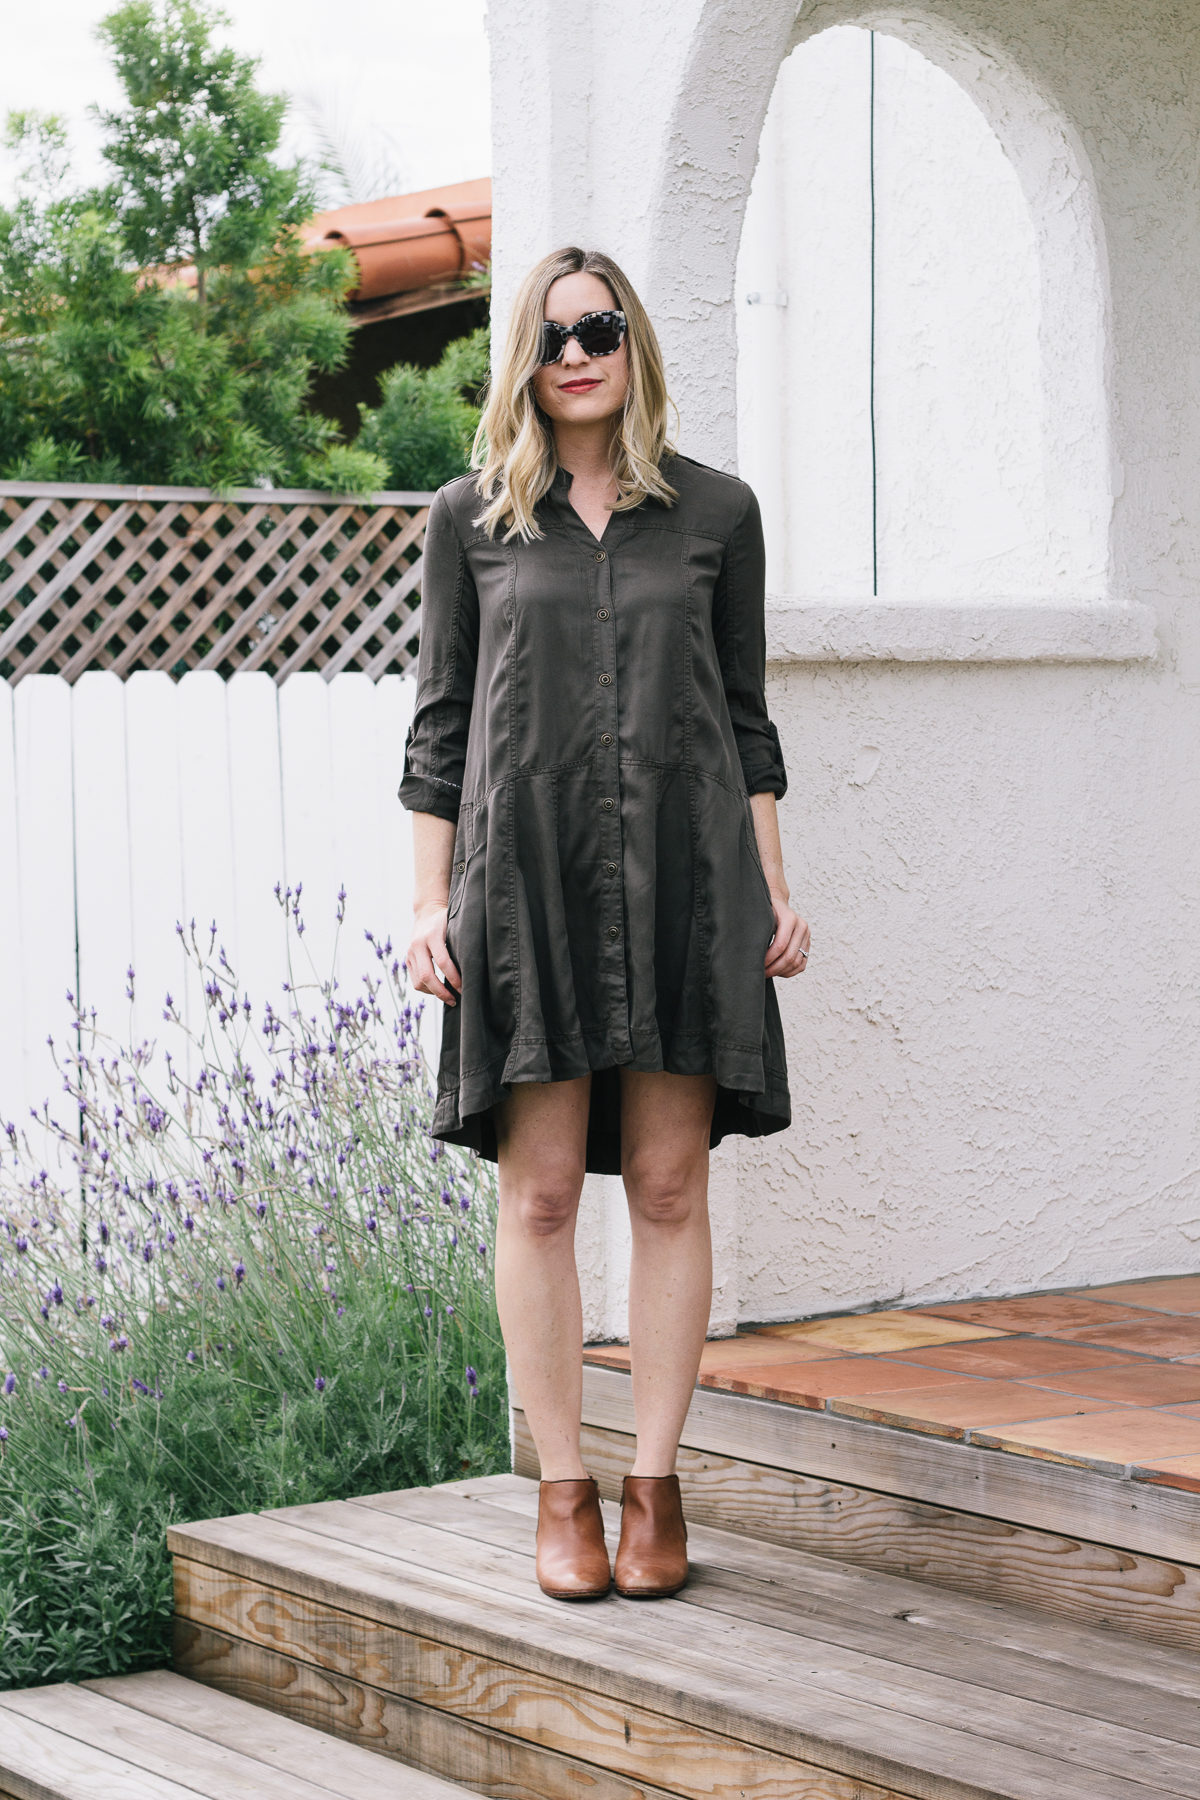 shirtdress-15-1200x1800.jpg